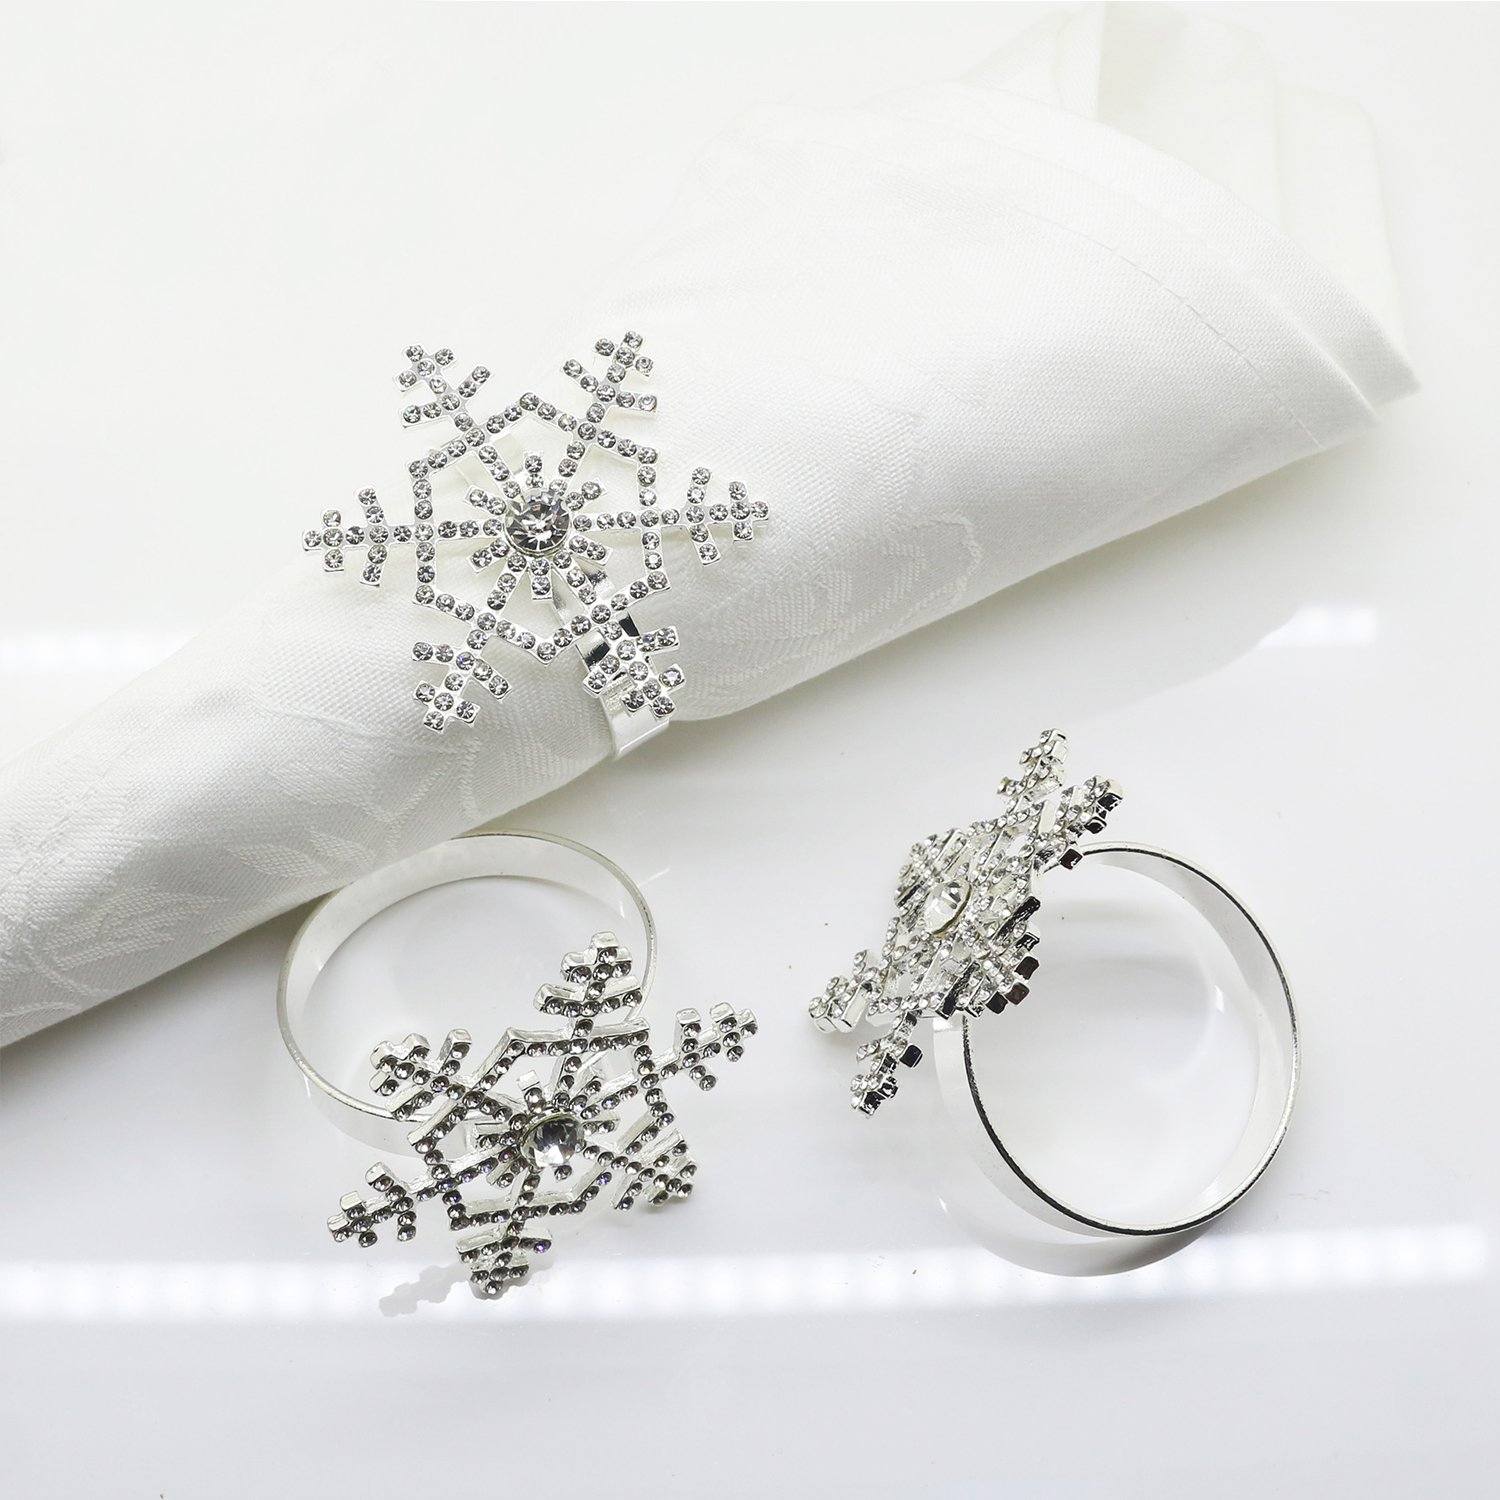 Snowflake Napkin Rings Set of 12 for Christmas, Holidays, Dinners, Parties,  Everyday